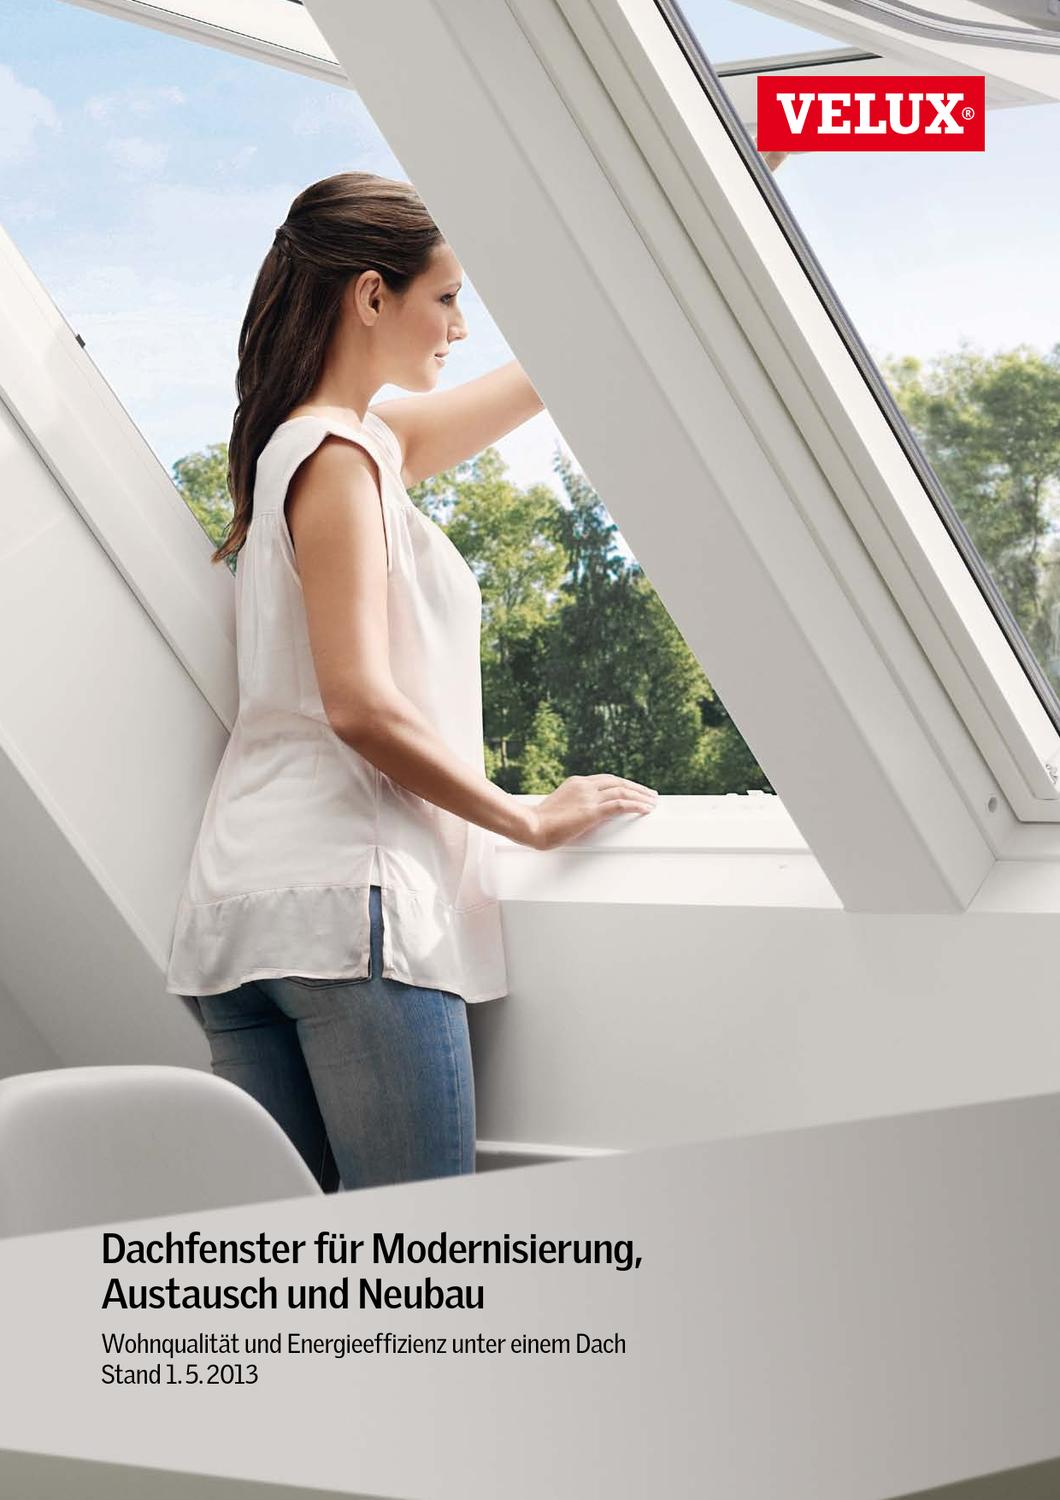 velux dachfenster by opus marketing gmbh issuu. Black Bedroom Furniture Sets. Home Design Ideas